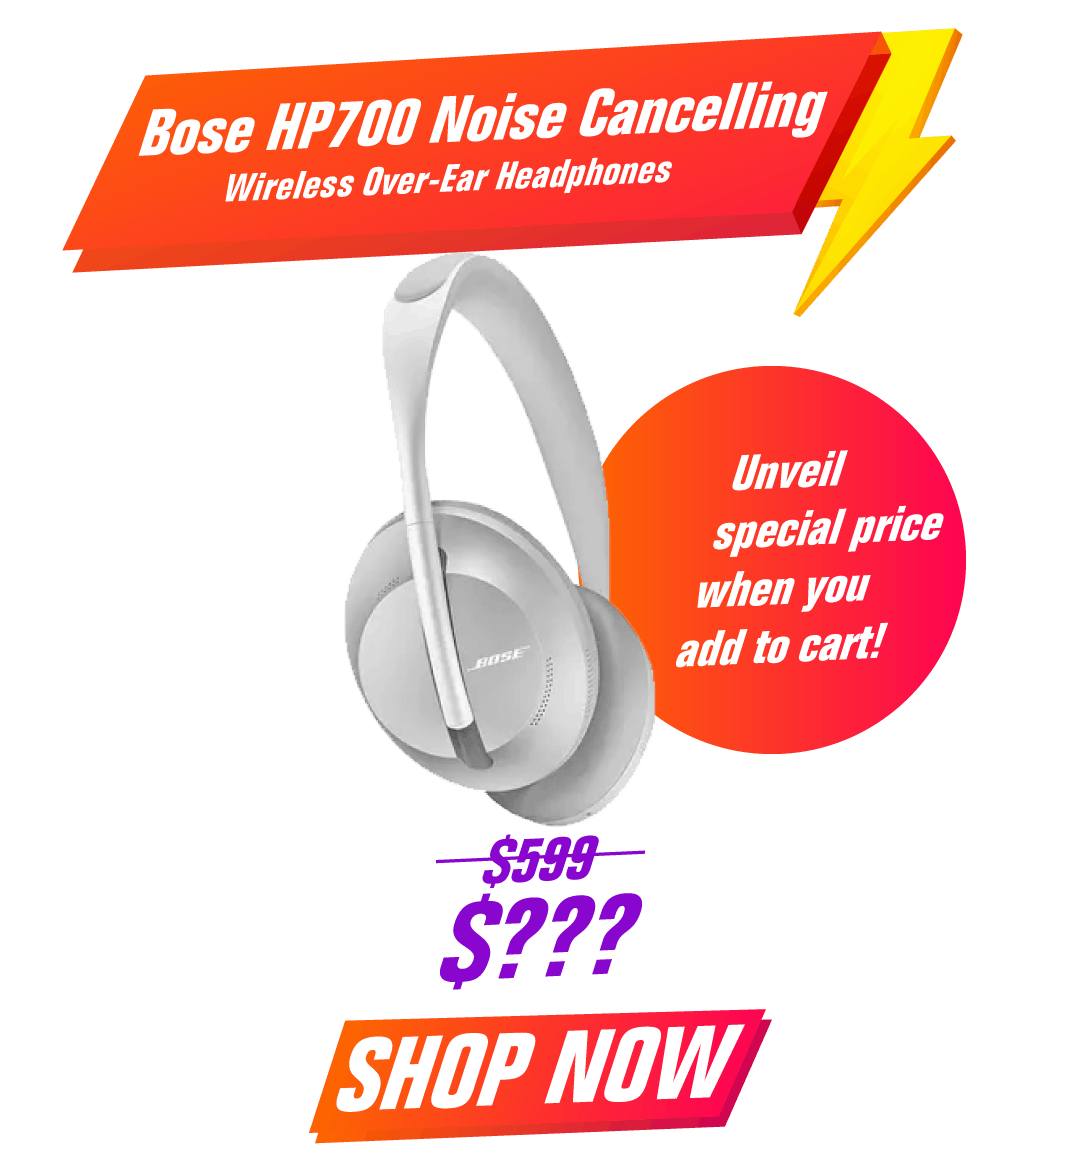 Bose HP700 Noice Cancelling Wireless Over-Ear Headphones - Luxe Silver